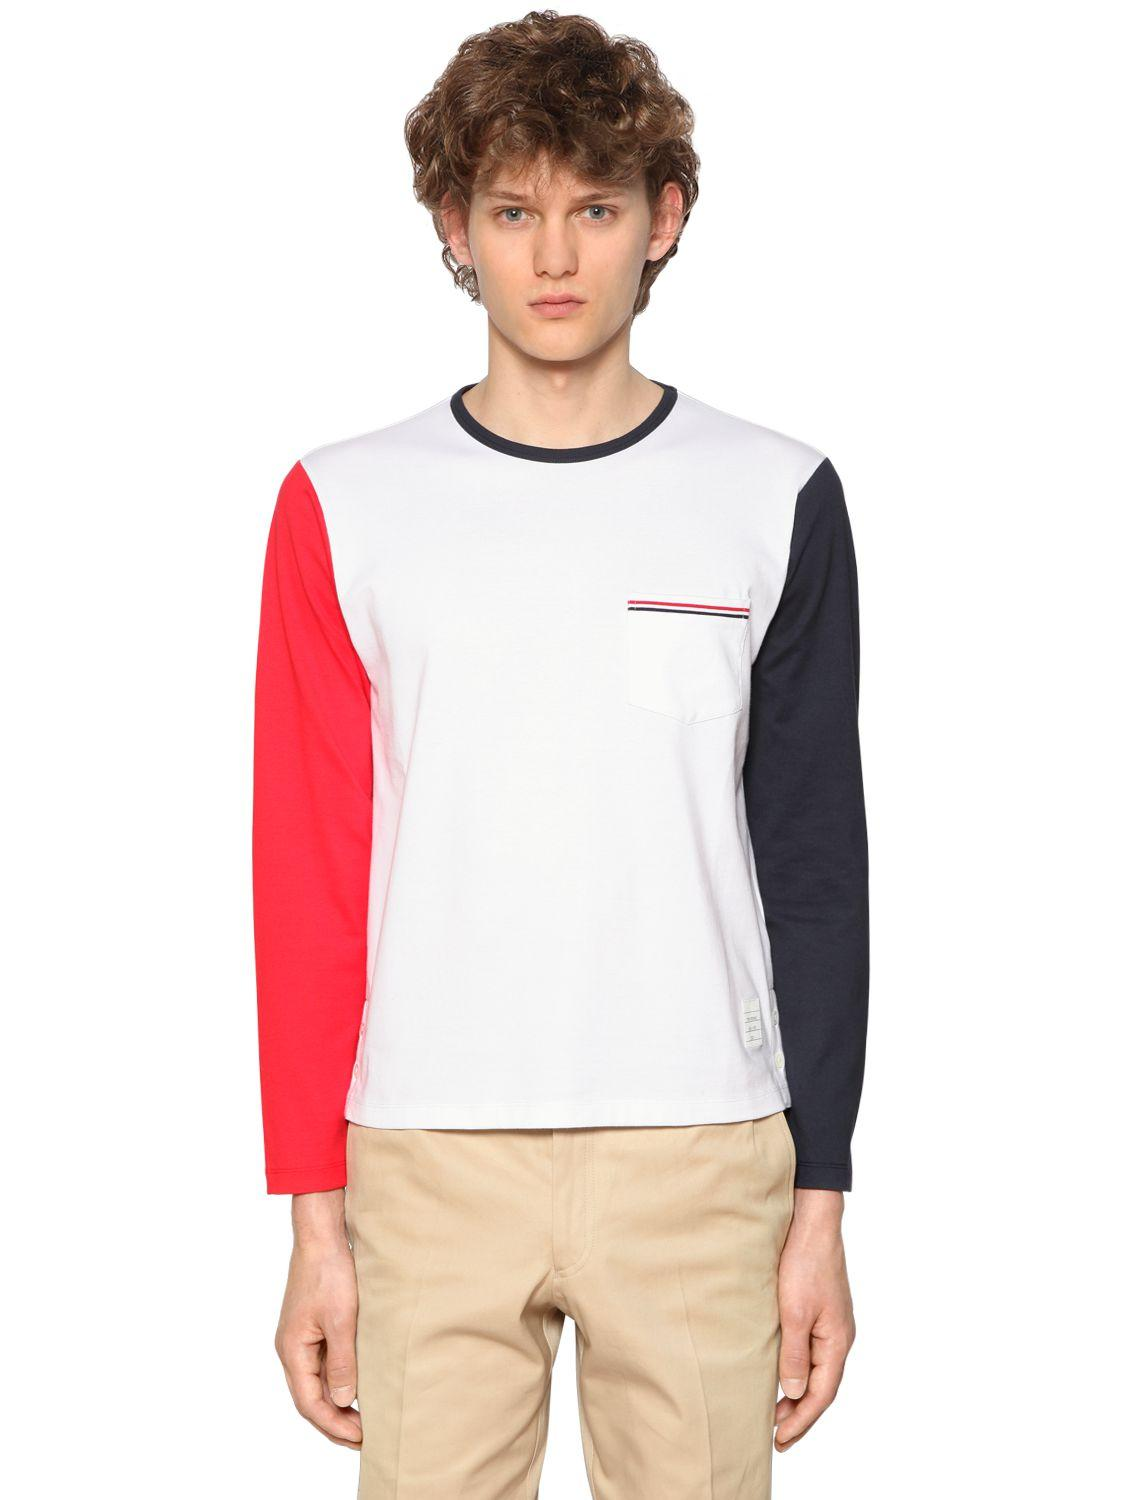 Thom browne color block jersey long sleeve t shirt for men for Thom browne t shirt